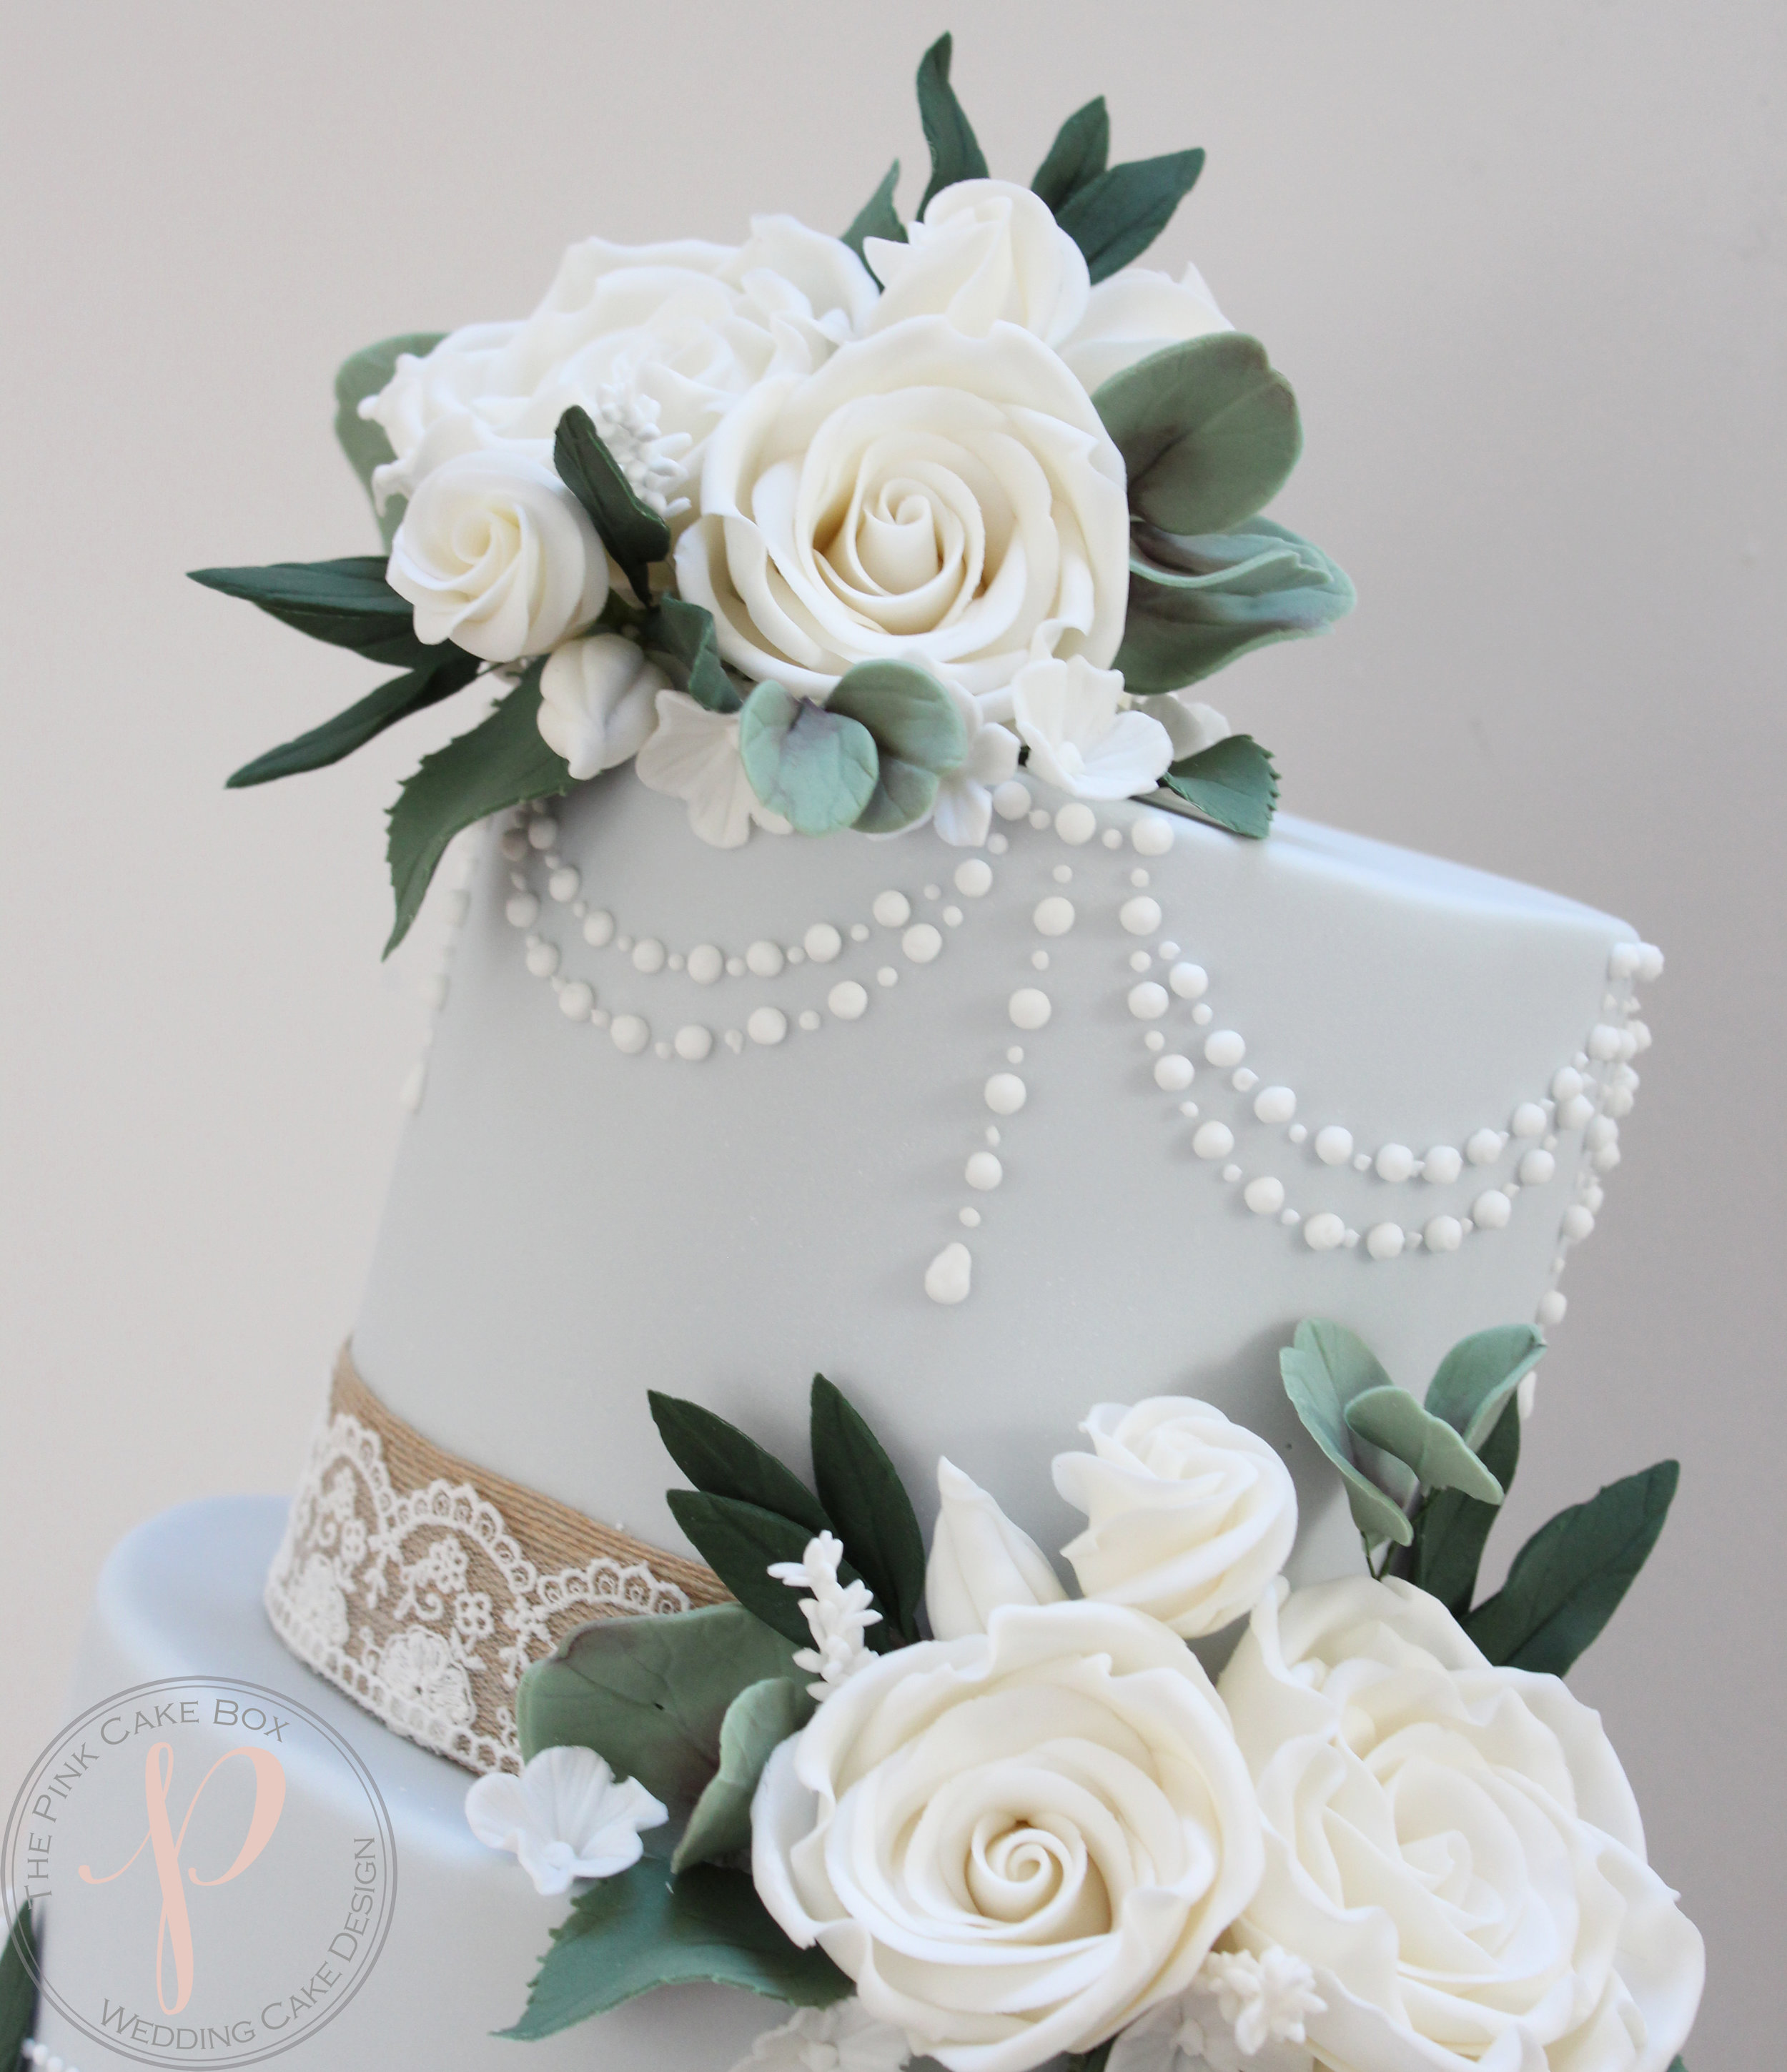 vintage blue wedding cake pearls and sugar flowers.jpg